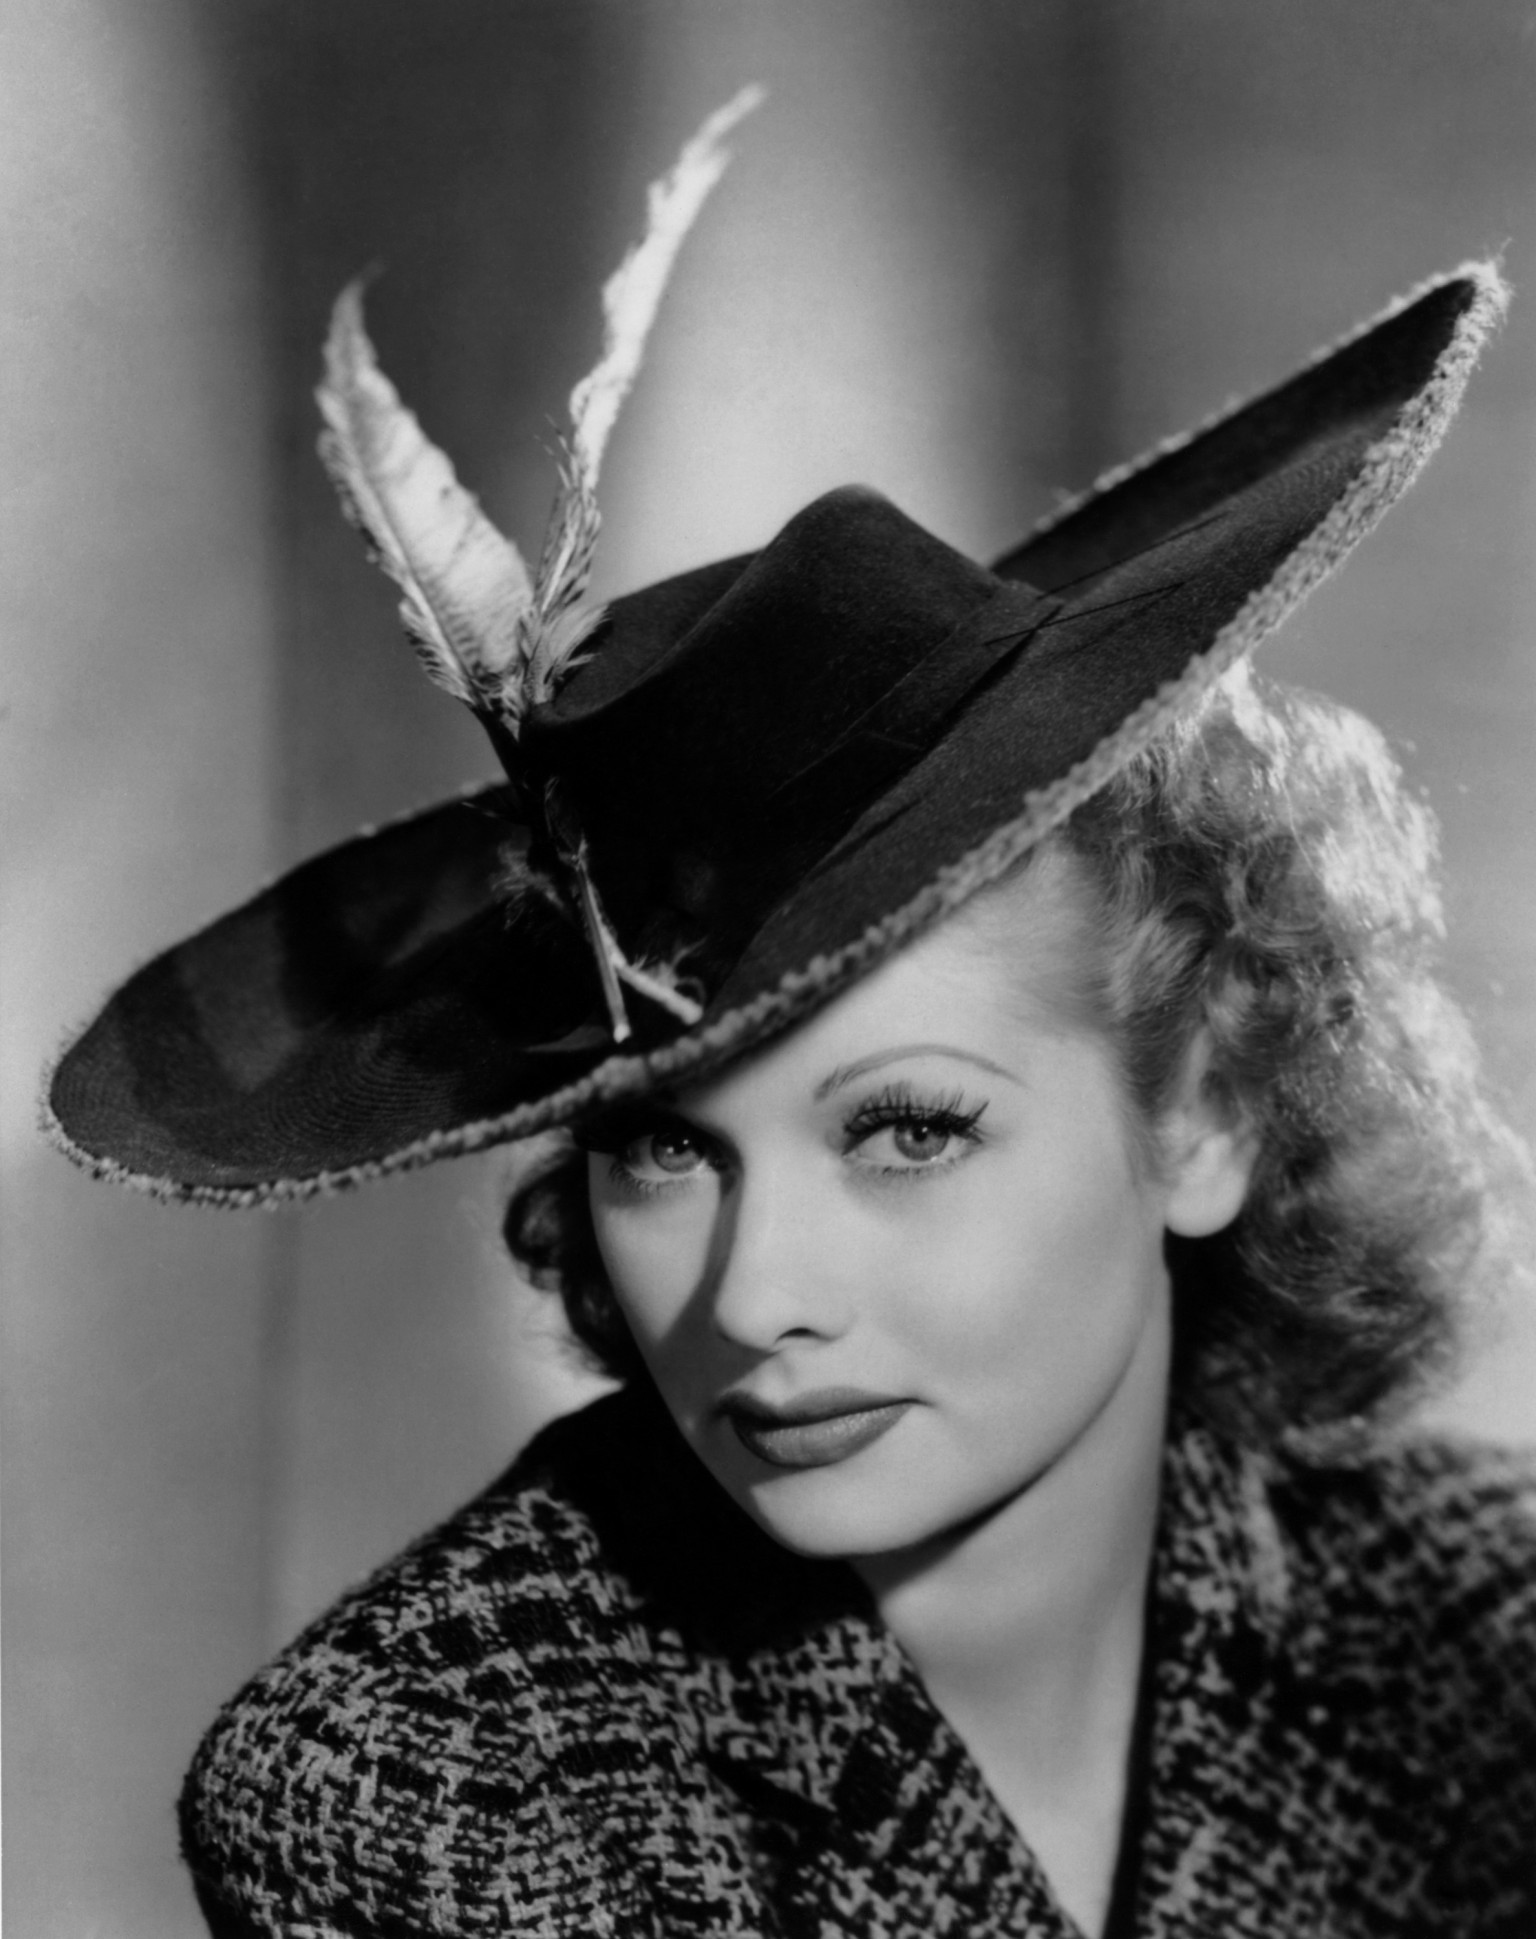 lucille ball barbielucille ball and her family, lucille ball rose, lucille ball daughter, lucille ball fred astaire, lucille ball film, lucille ball and desi arnaz interview, lucille ball barbie, lucille ball home, lucille ball gif, lucille ball gallery, lucille ball quotes, lucille ball natal chart, lucille ball, lucille ball statue, lucille ball death, lucille ball biography, lucille ball wiki, lucille ball height, lucille ball young, lucille ball show